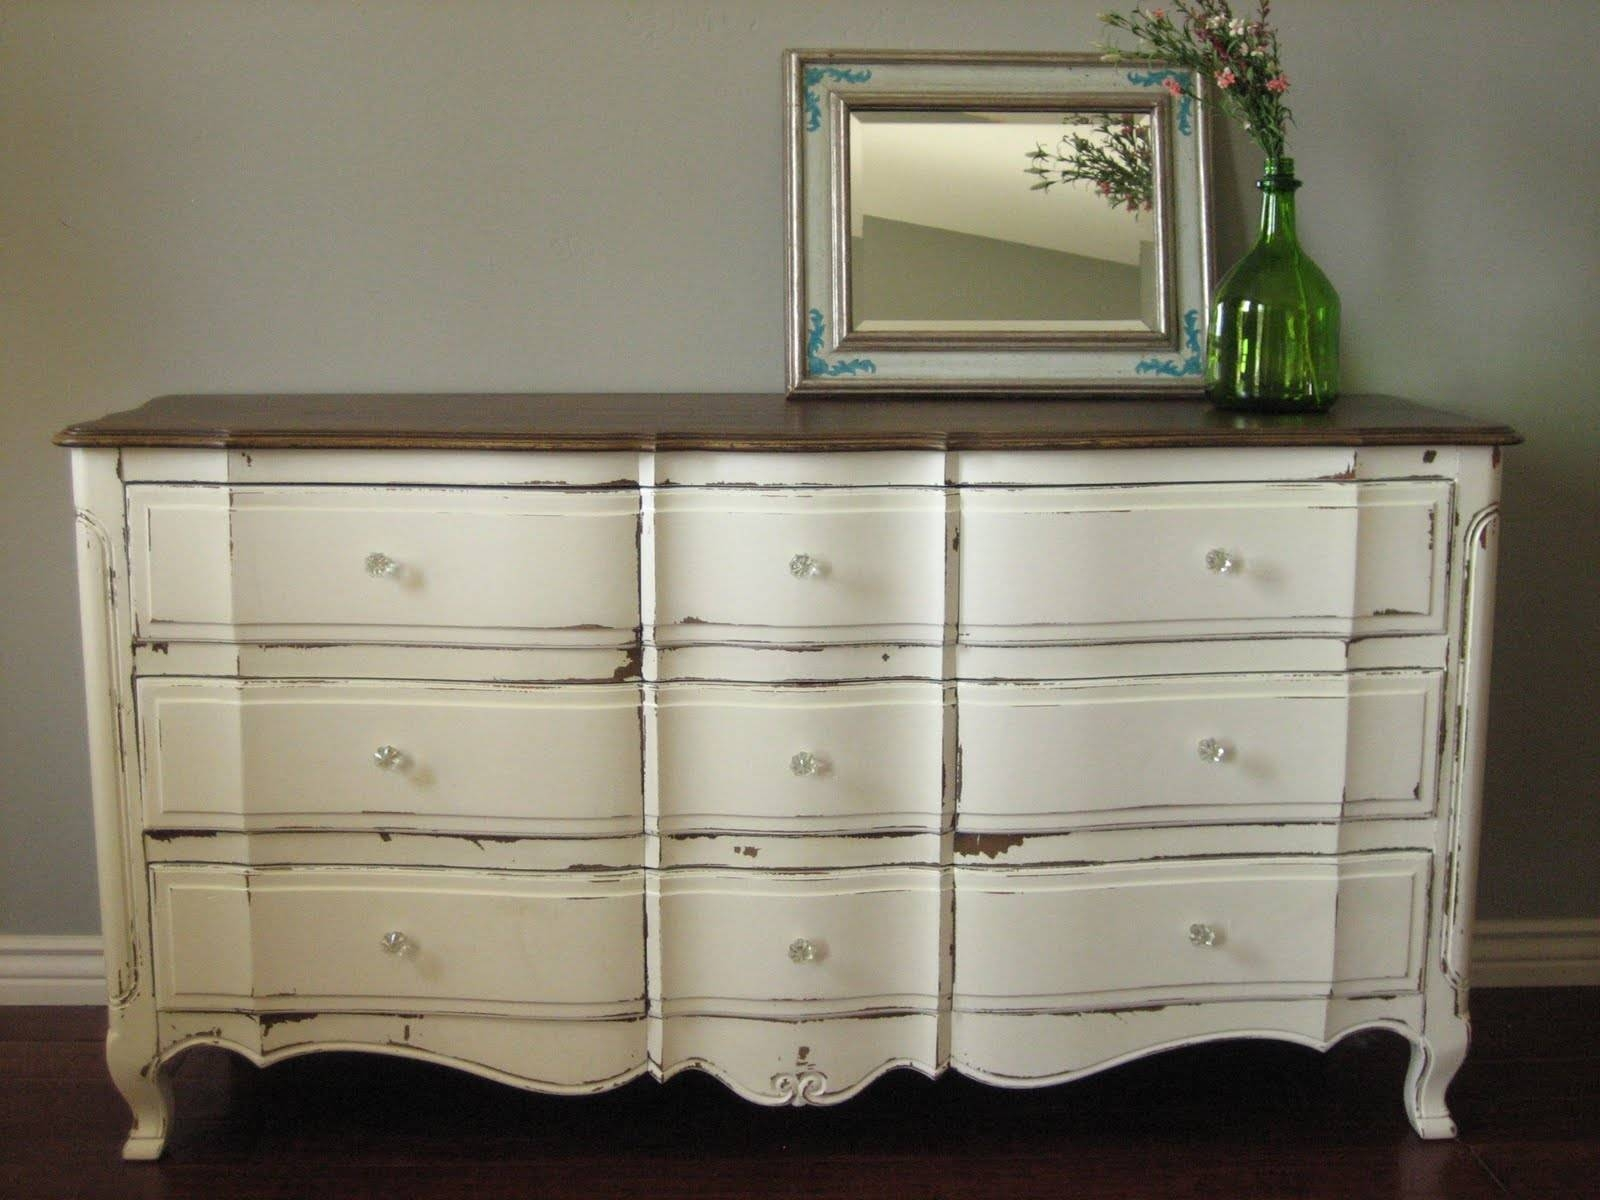 European Paint Finishes: April 2011 with regard to White Distressed Finish Sideboards (Image 16 of 30)